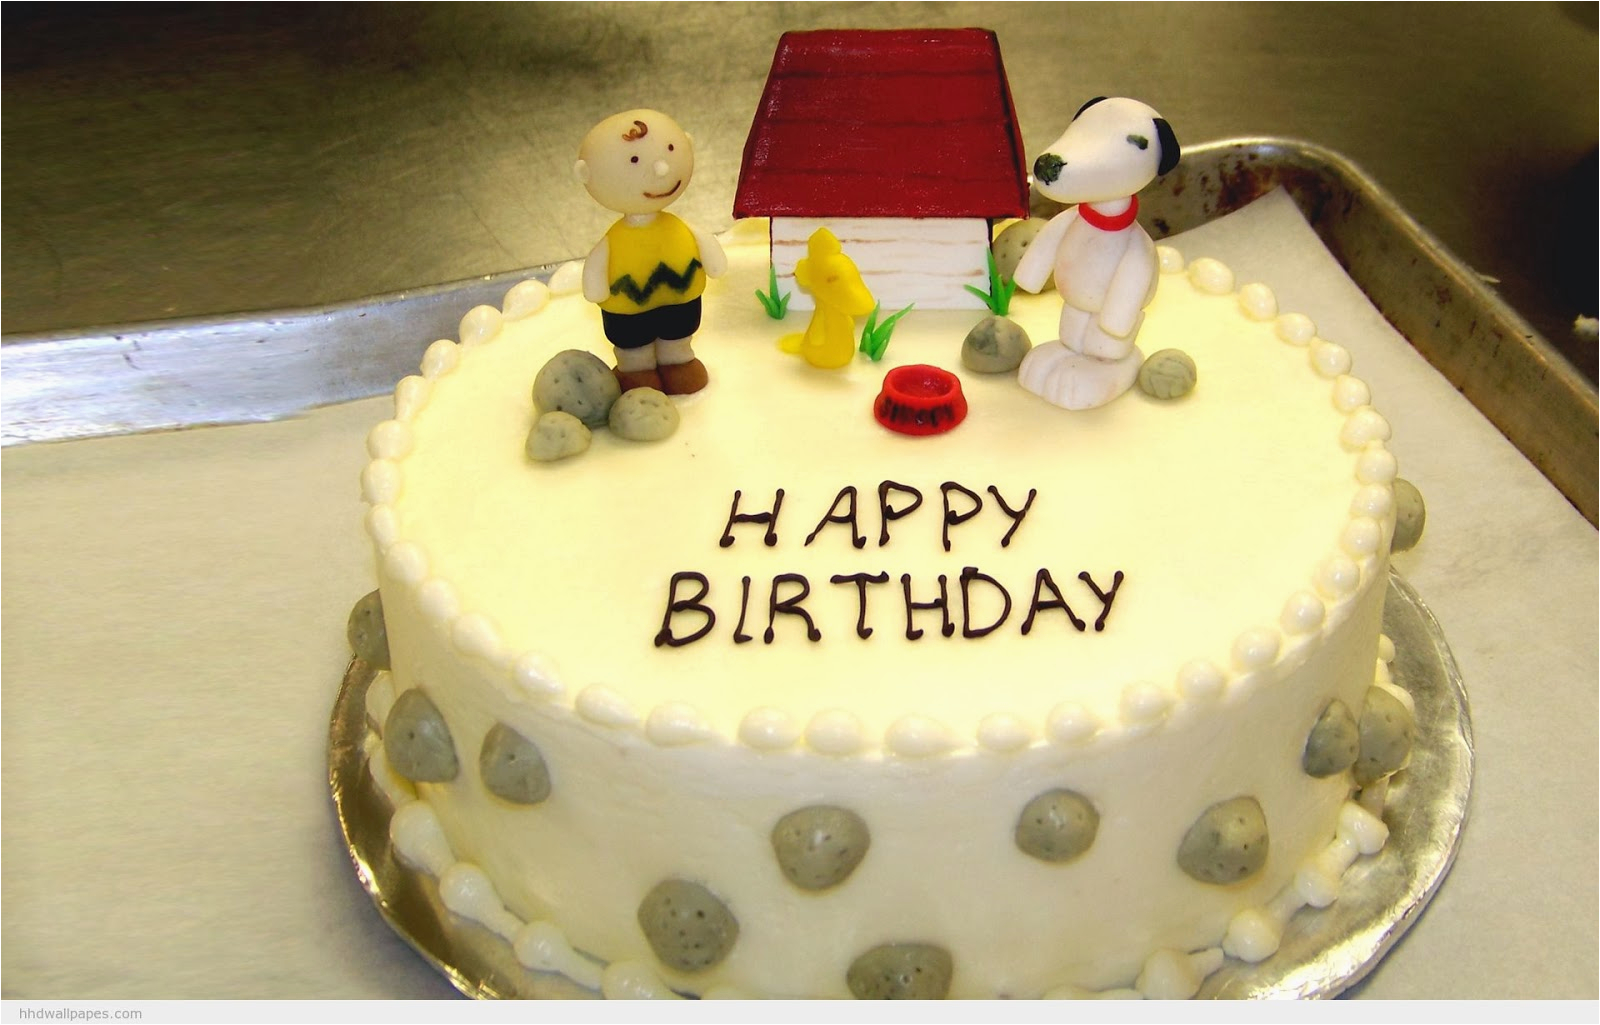 images for happy birthday cakes hd free